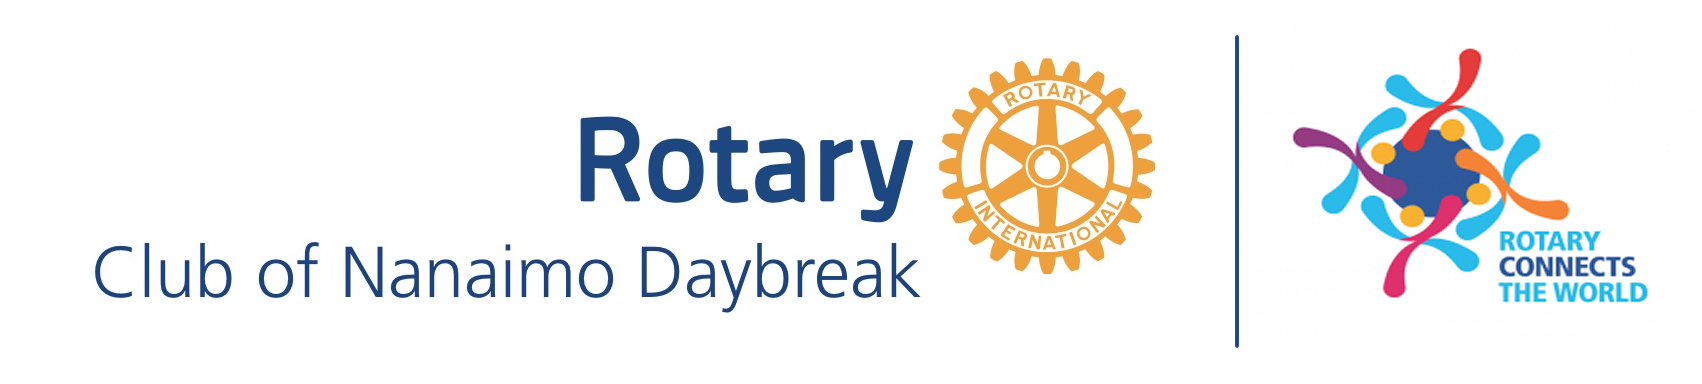 Rotary Club of Nanaimo Daybreak